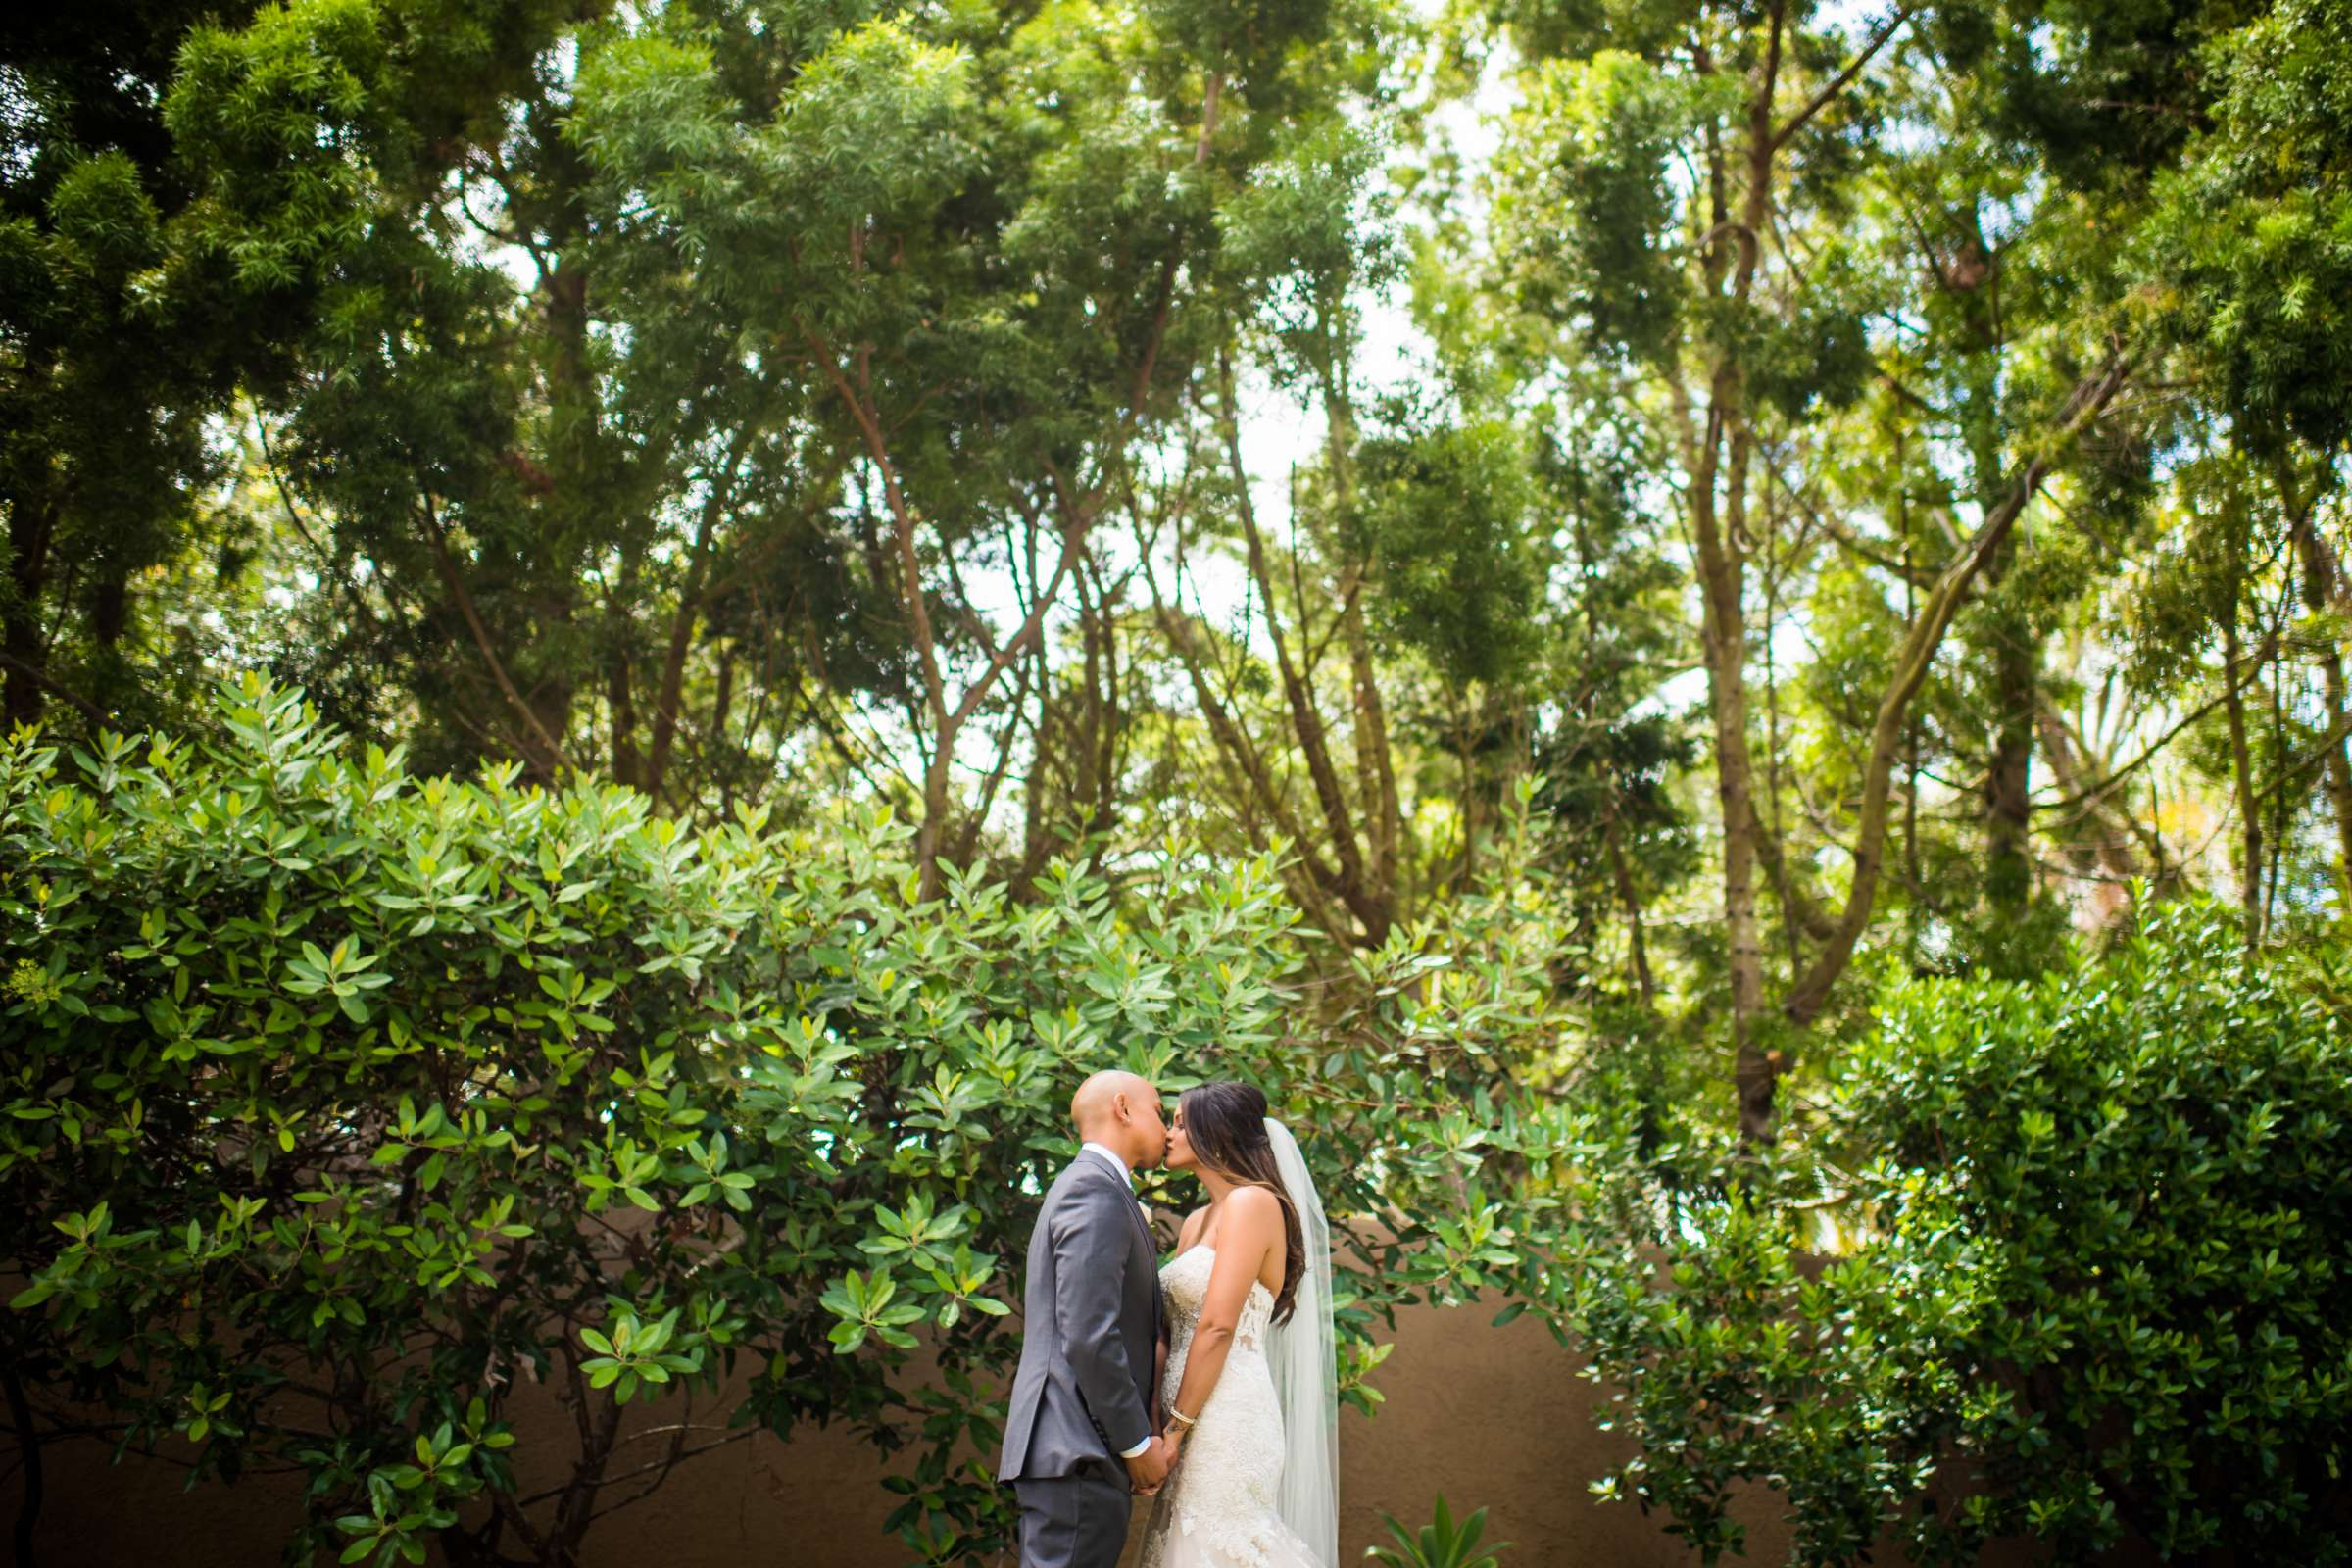 Scripps Seaside Forum Wedding coordinated by Lavish Weddings, Cindy and Justin Wedding Photo #381760 by True Photography